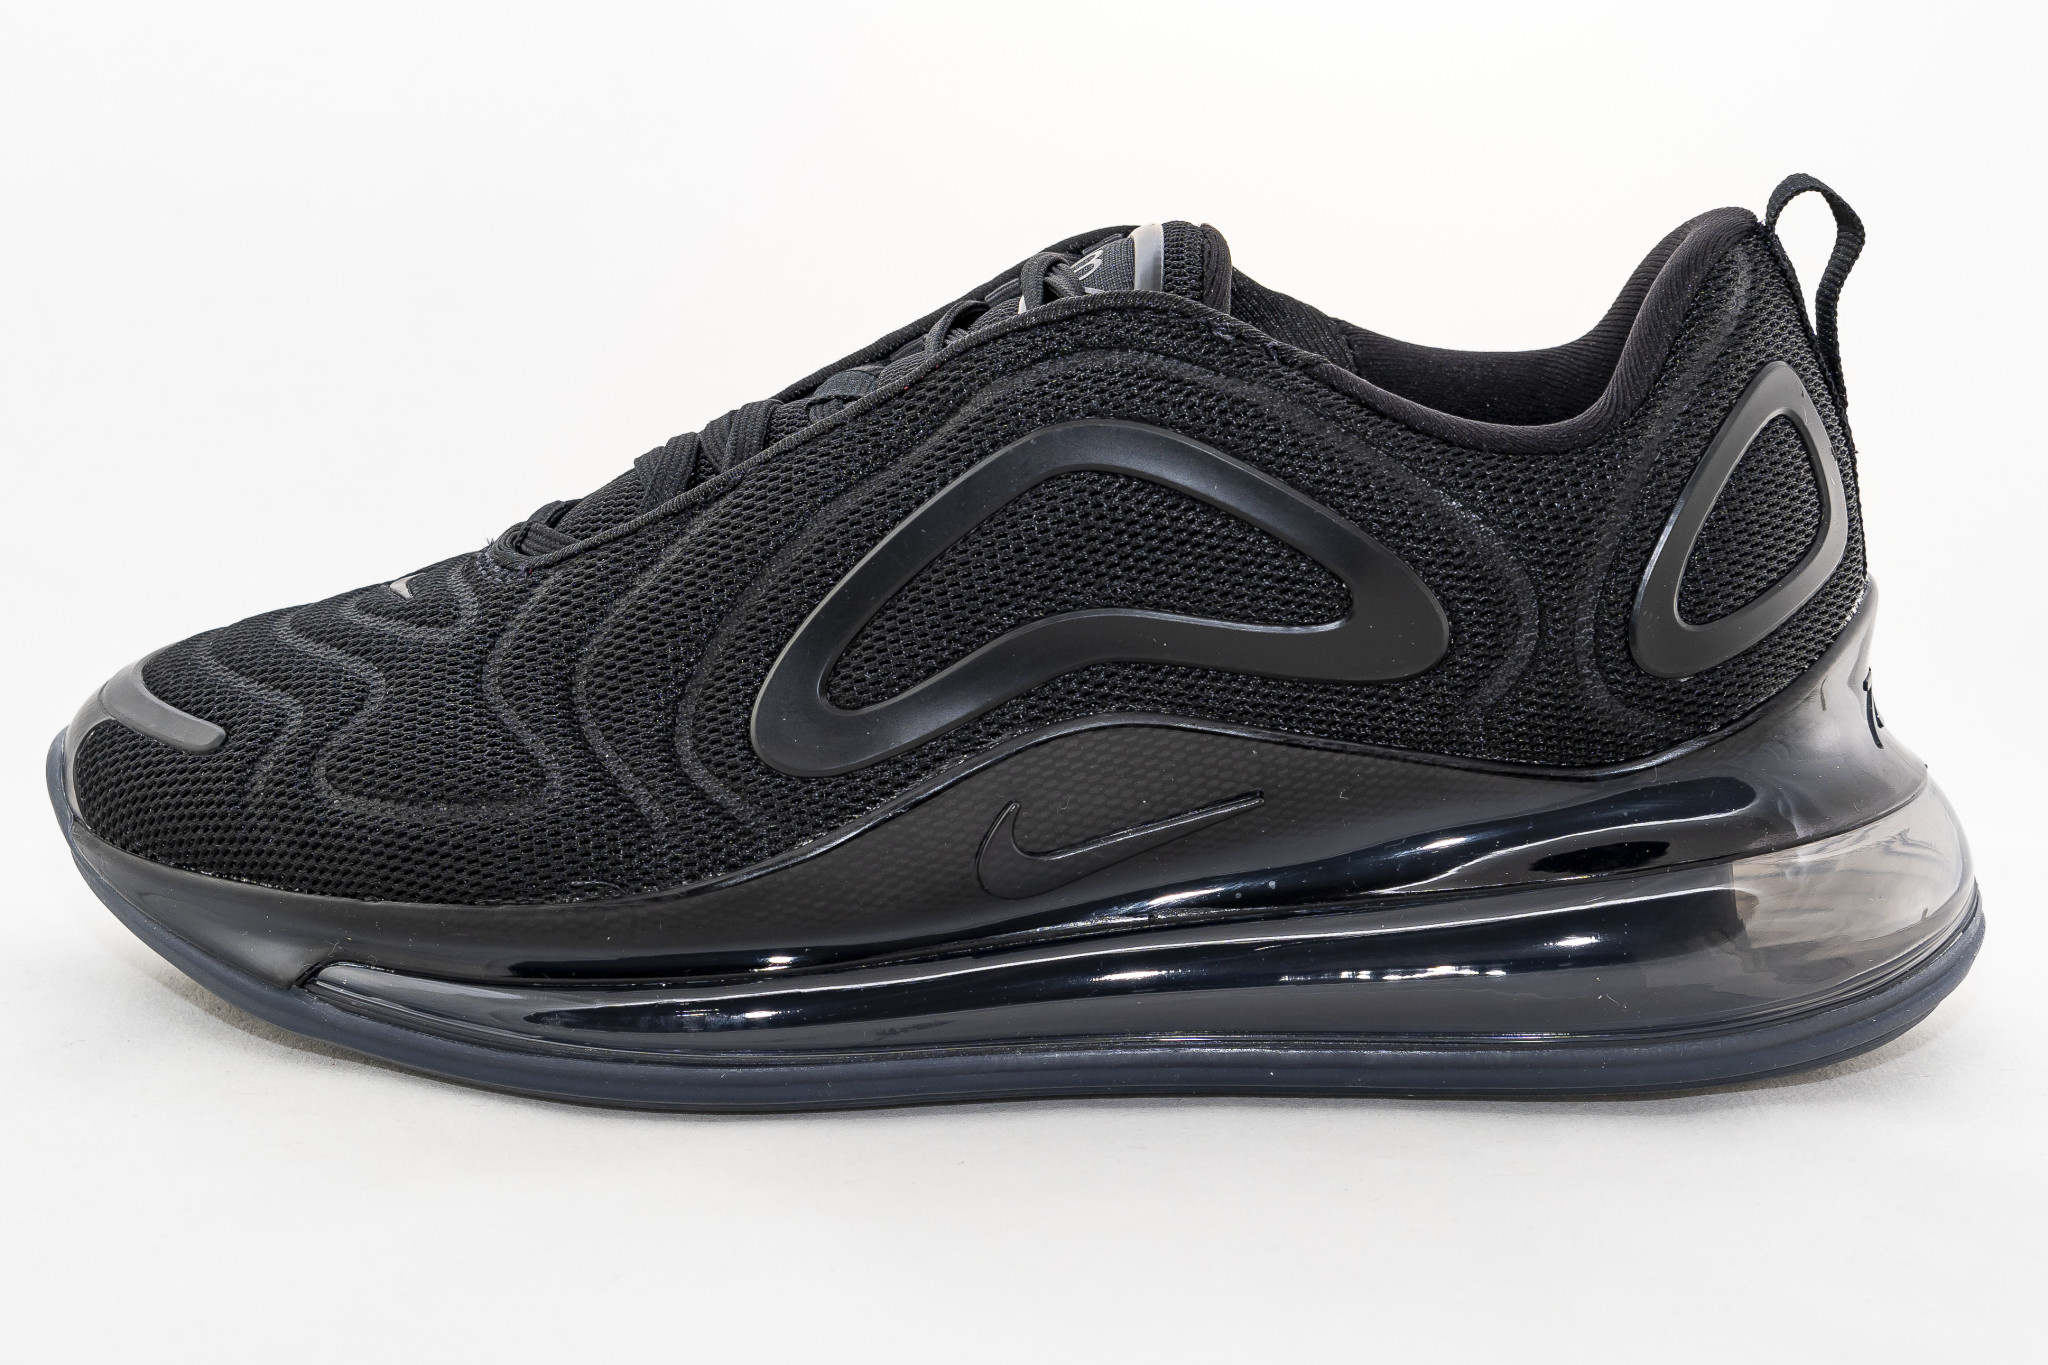 Nike AIR MAX 720 Black/ Black/ Anthracite